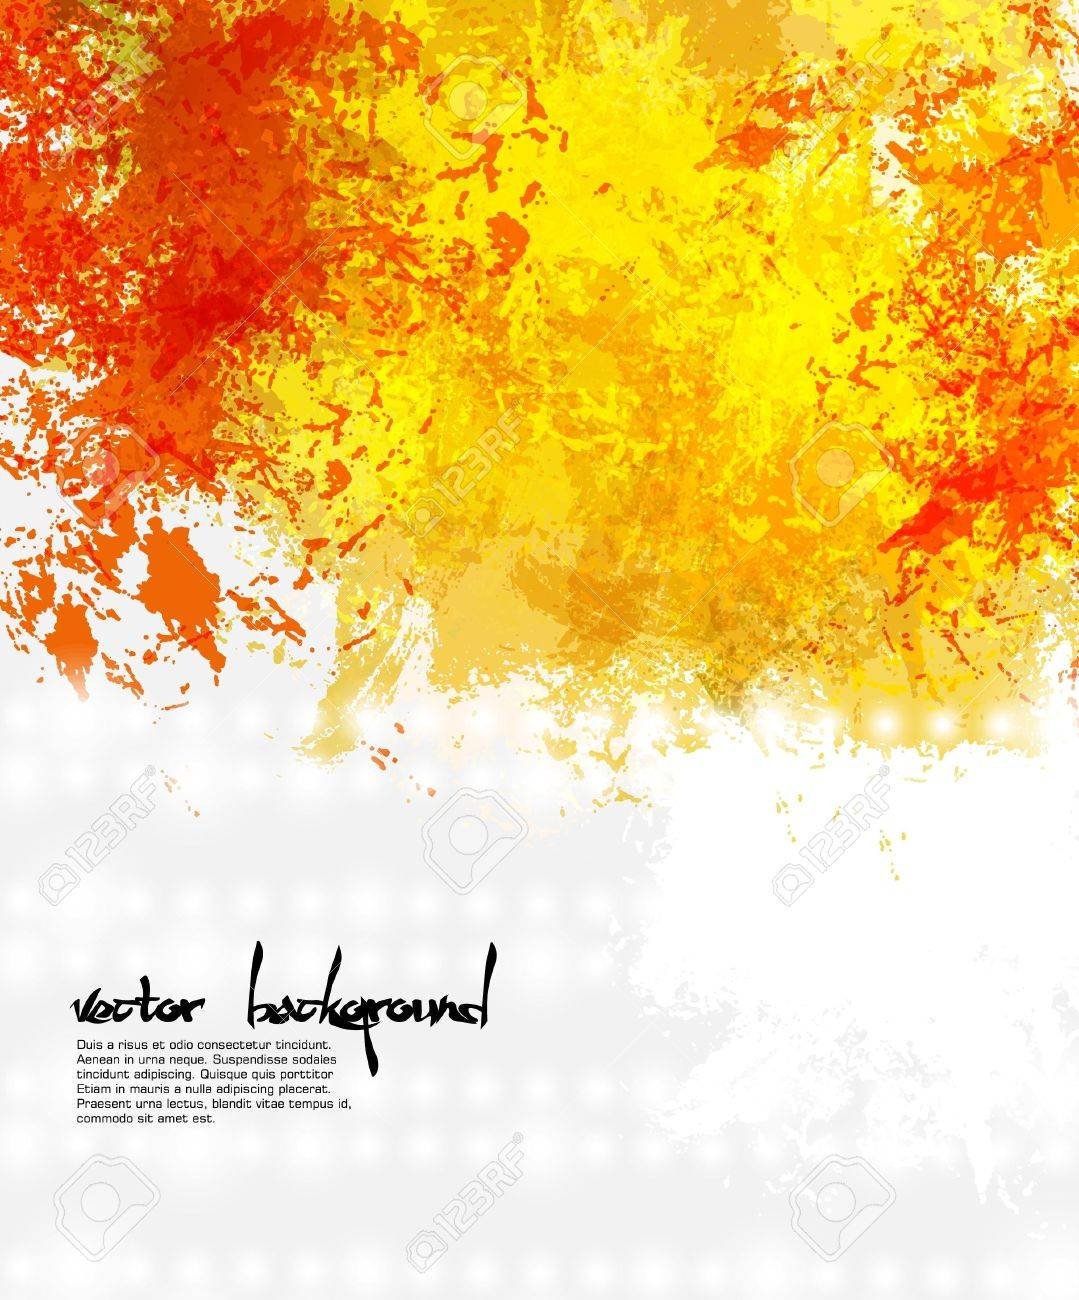 Abstract artistic Background of bright colors - 22069264